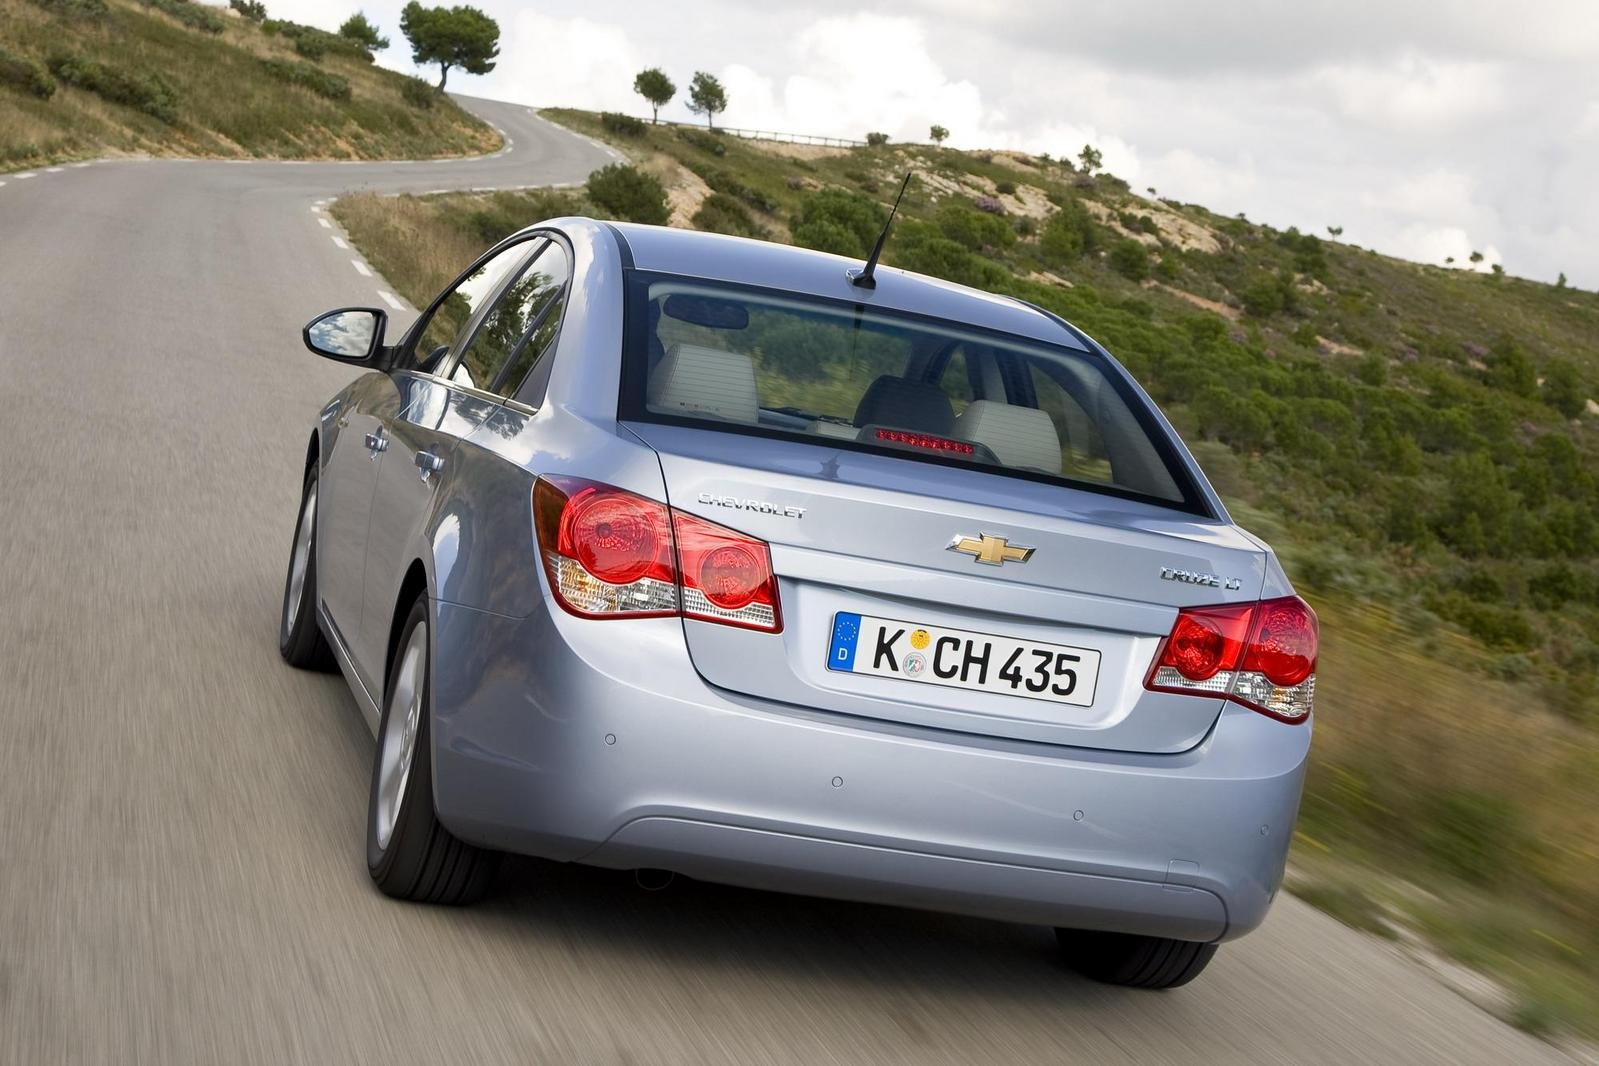 2010 chevrolet cruze picture 291832 car review top speed. Black Bedroom Furniture Sets. Home Design Ideas